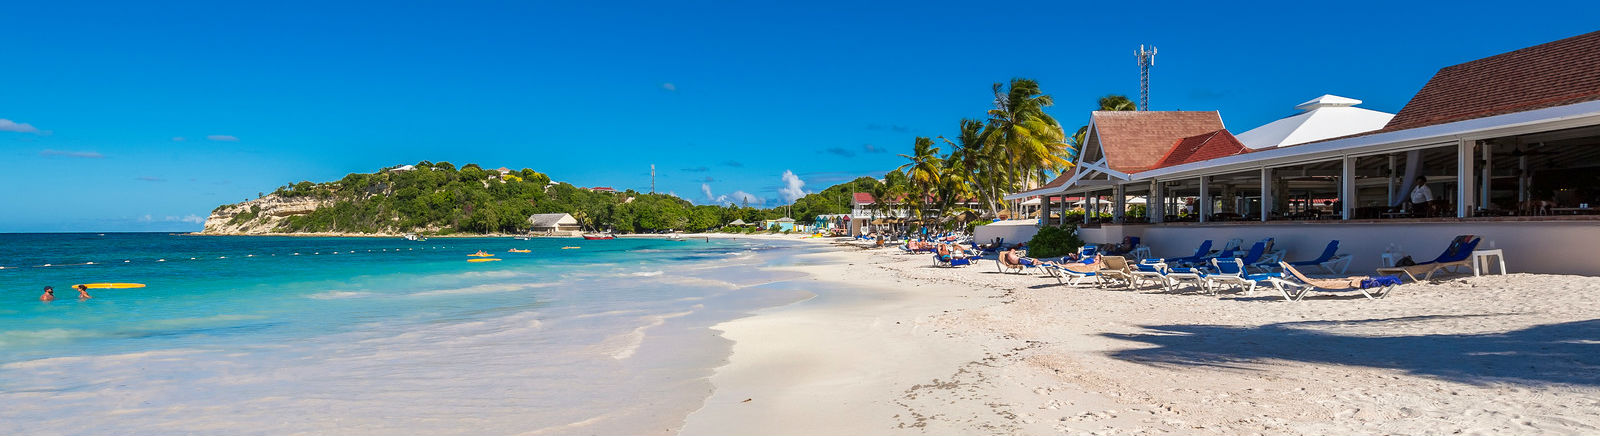 white sandy beach at the Pineapple Beach Club, Antigua